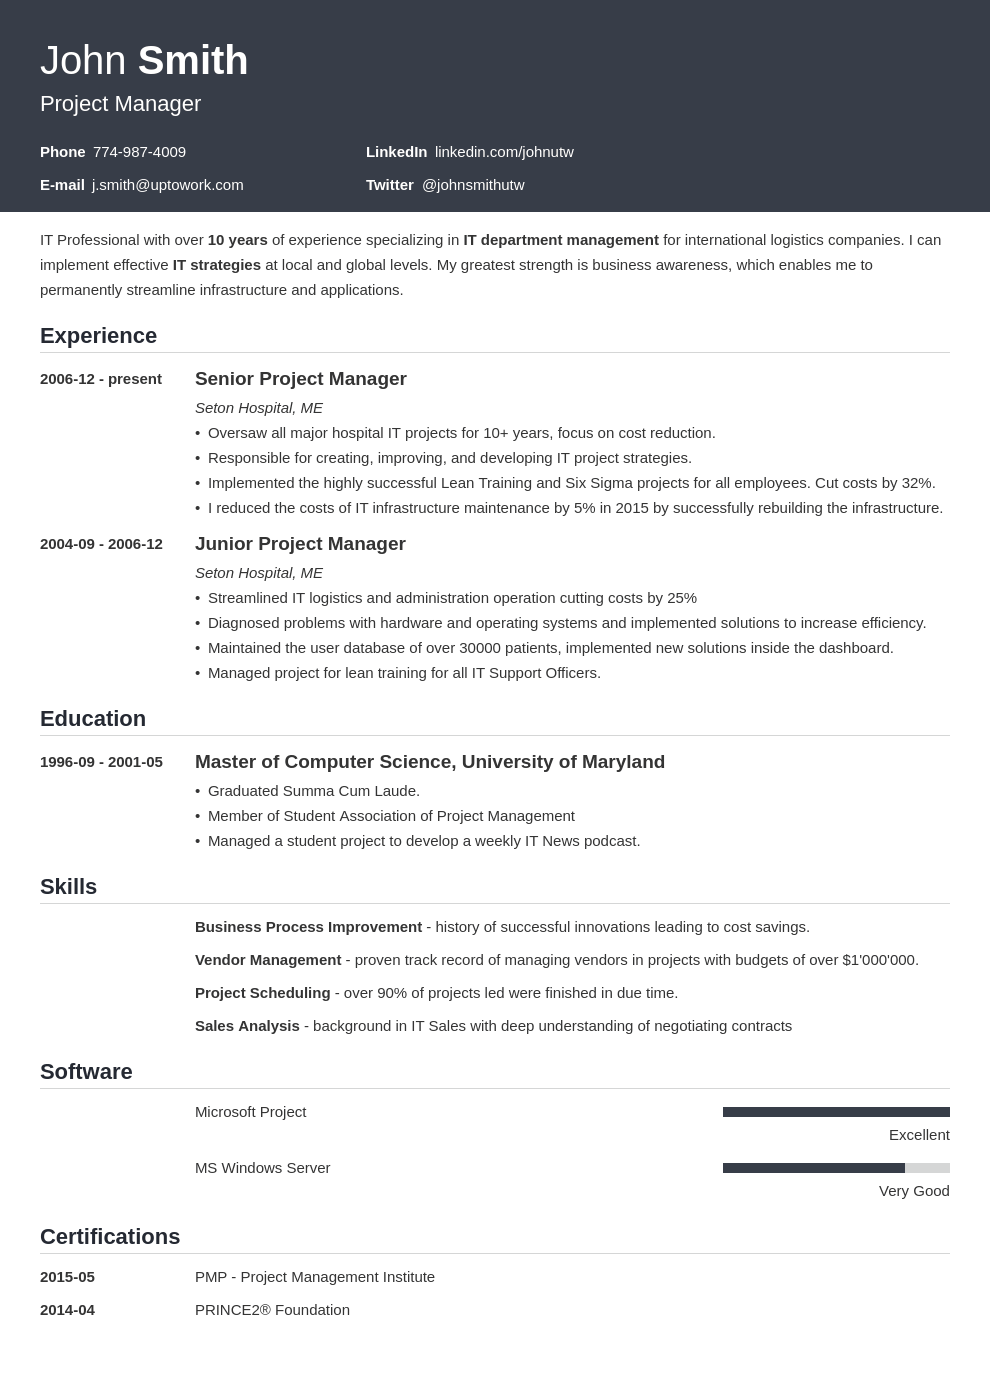 Resume Template Docs | 20 Resume Templates Download Create Your Resume In 5 Minutes